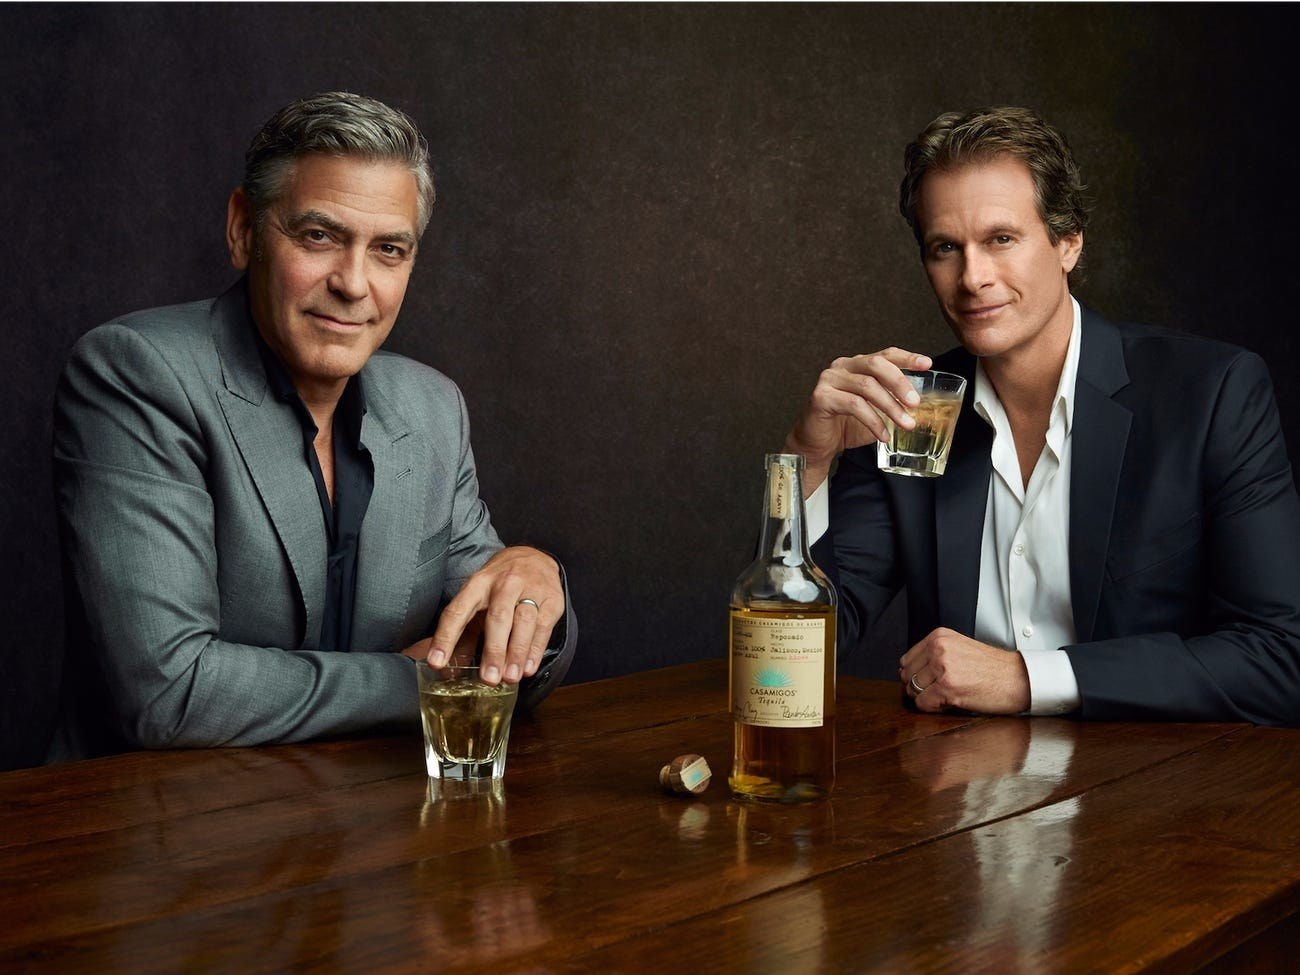 Casamigos founders George Clooney and Rande Gerber sitting at a table drinking glasses of tequila